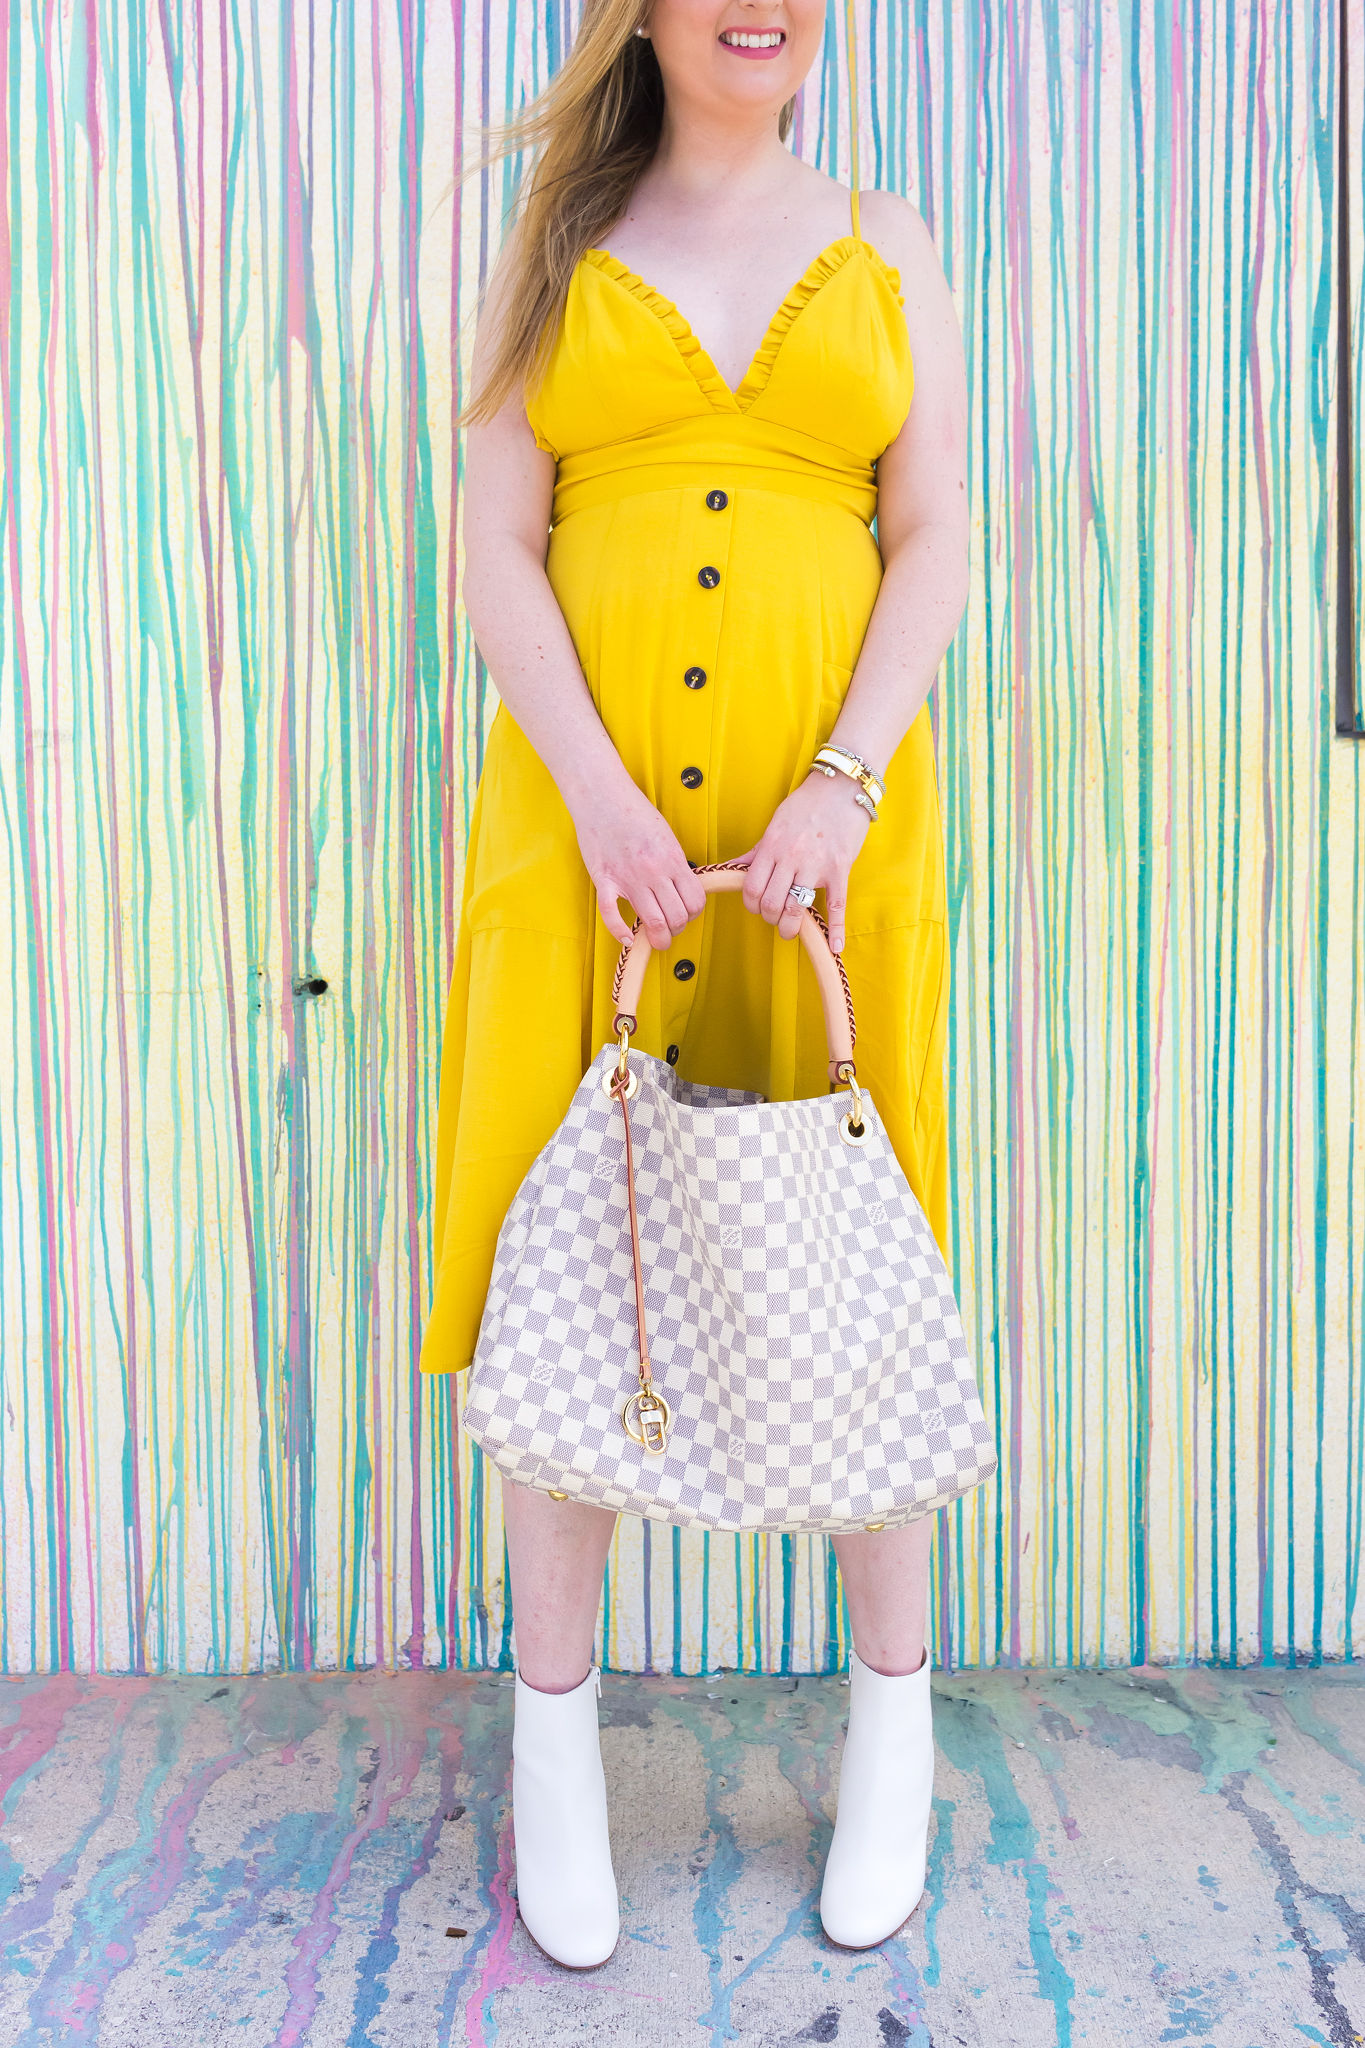 Aqua brand yellow dress | Louboutin suzi boots | Louis Vuitton Artsy | Louis Vuitton artsy damier azur | David Yurman cable bracelet | Hermes clic clac